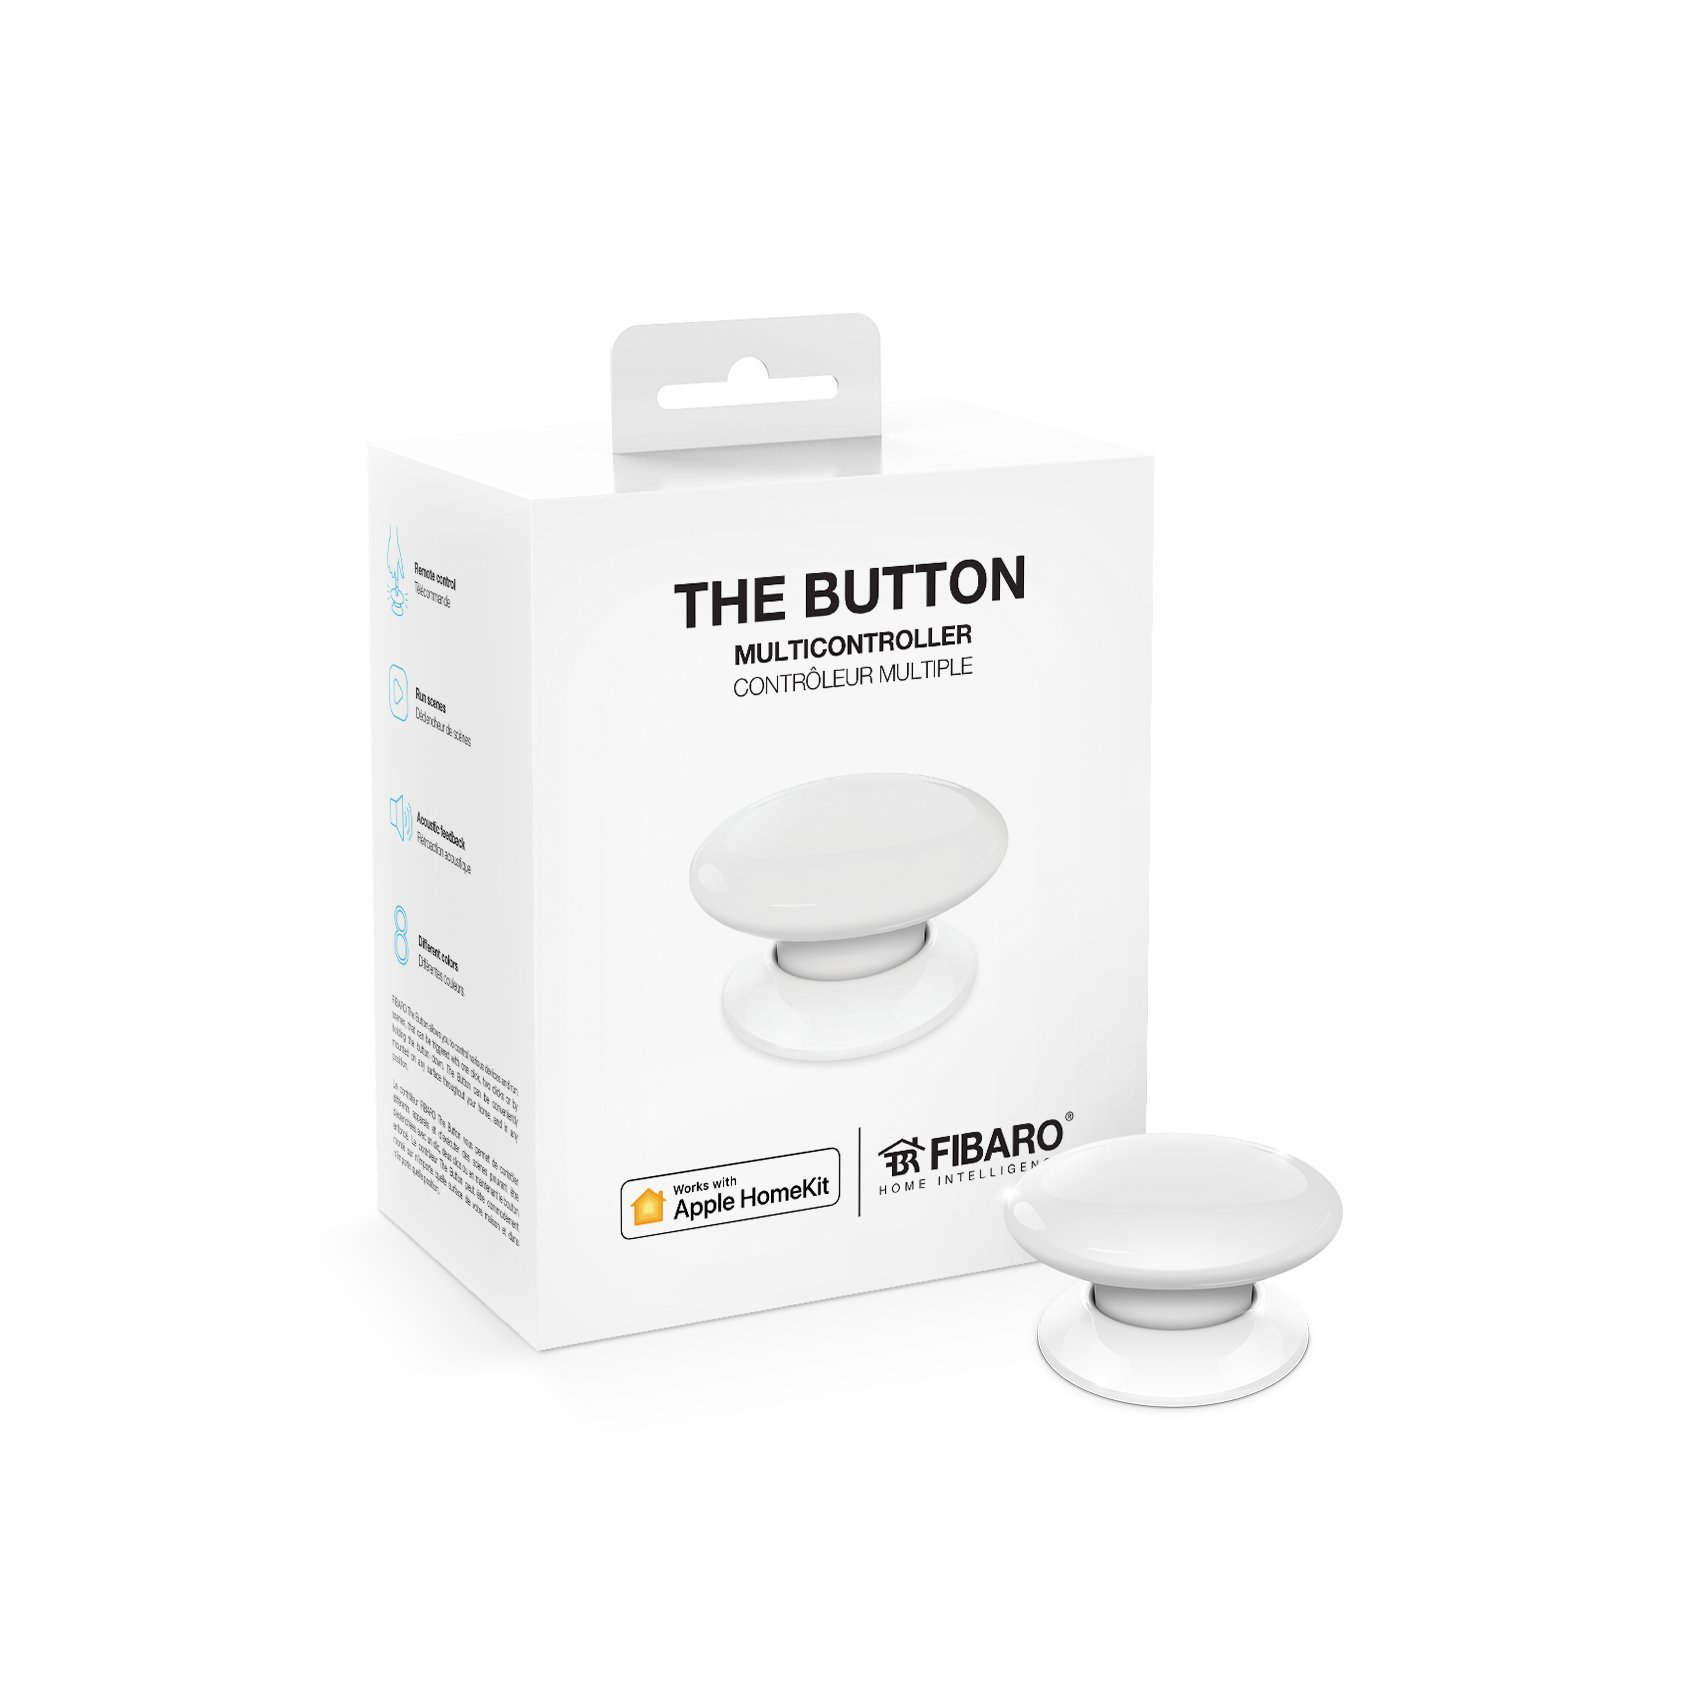 Fibaro FGBHPB-101(1) Multi-Controller Button, Homekit Enabled